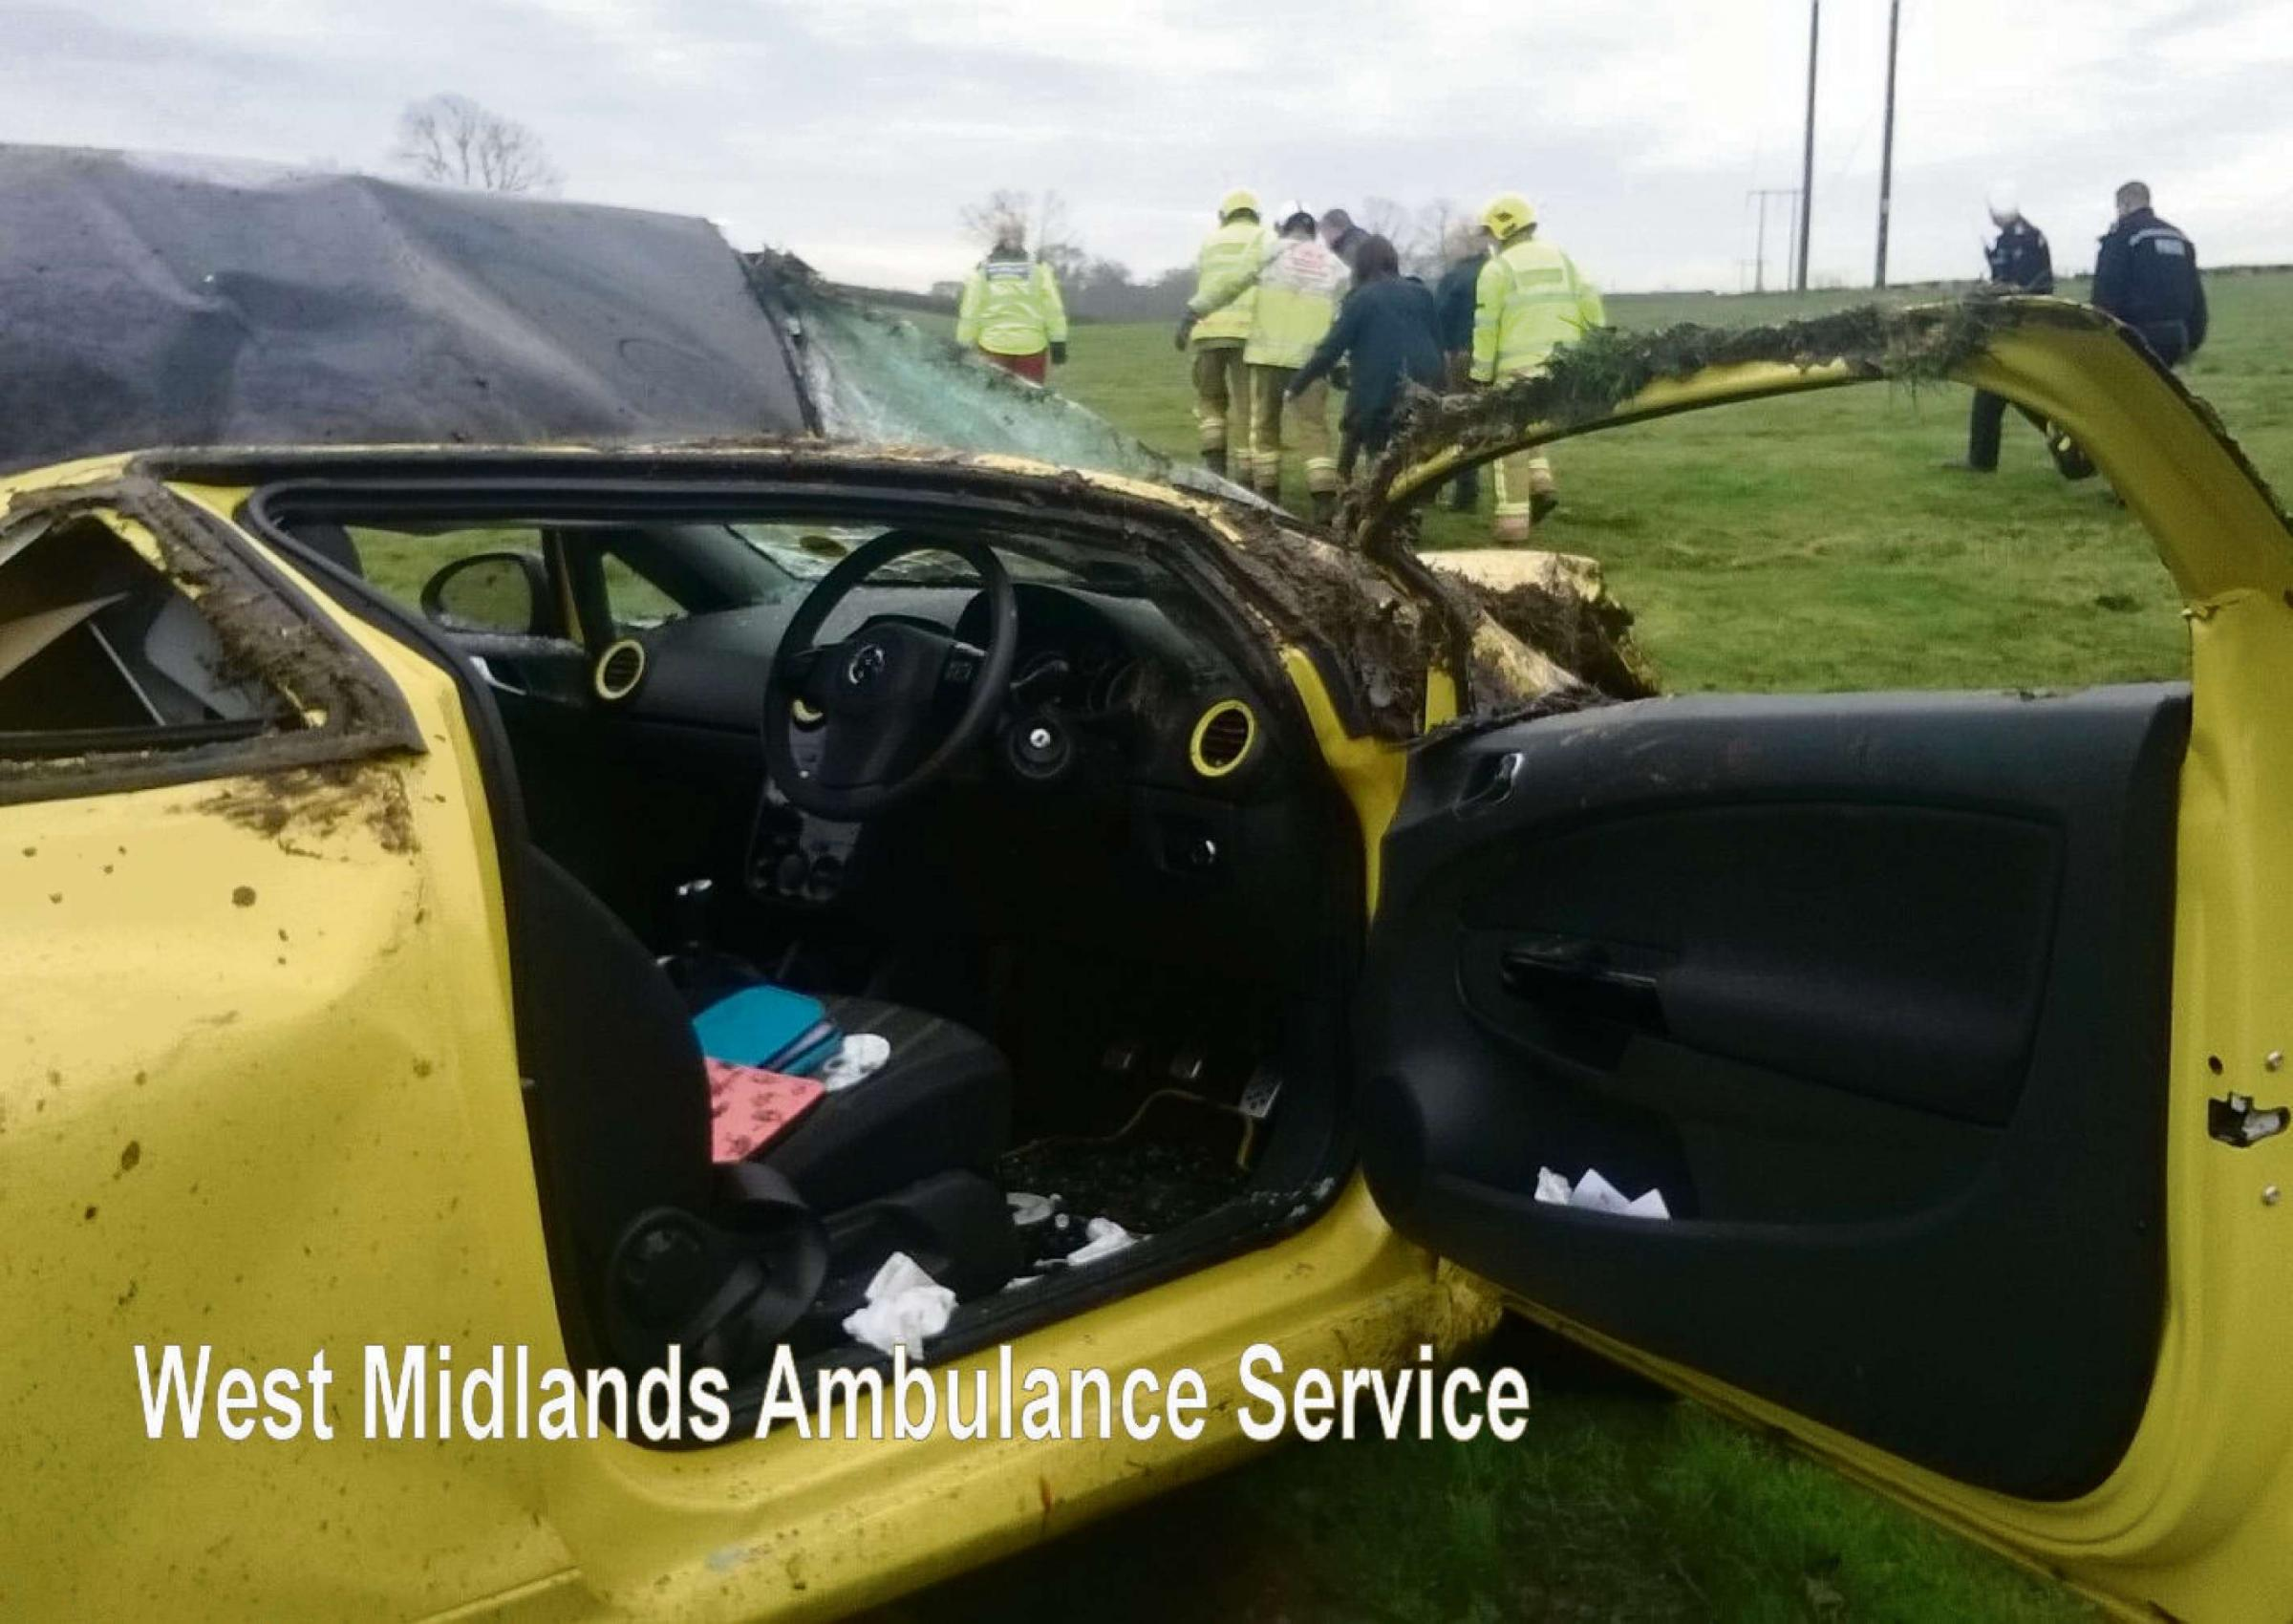 OVERTURNED: West Midlands Ambulance Service was called to a field near Flyford Flavell